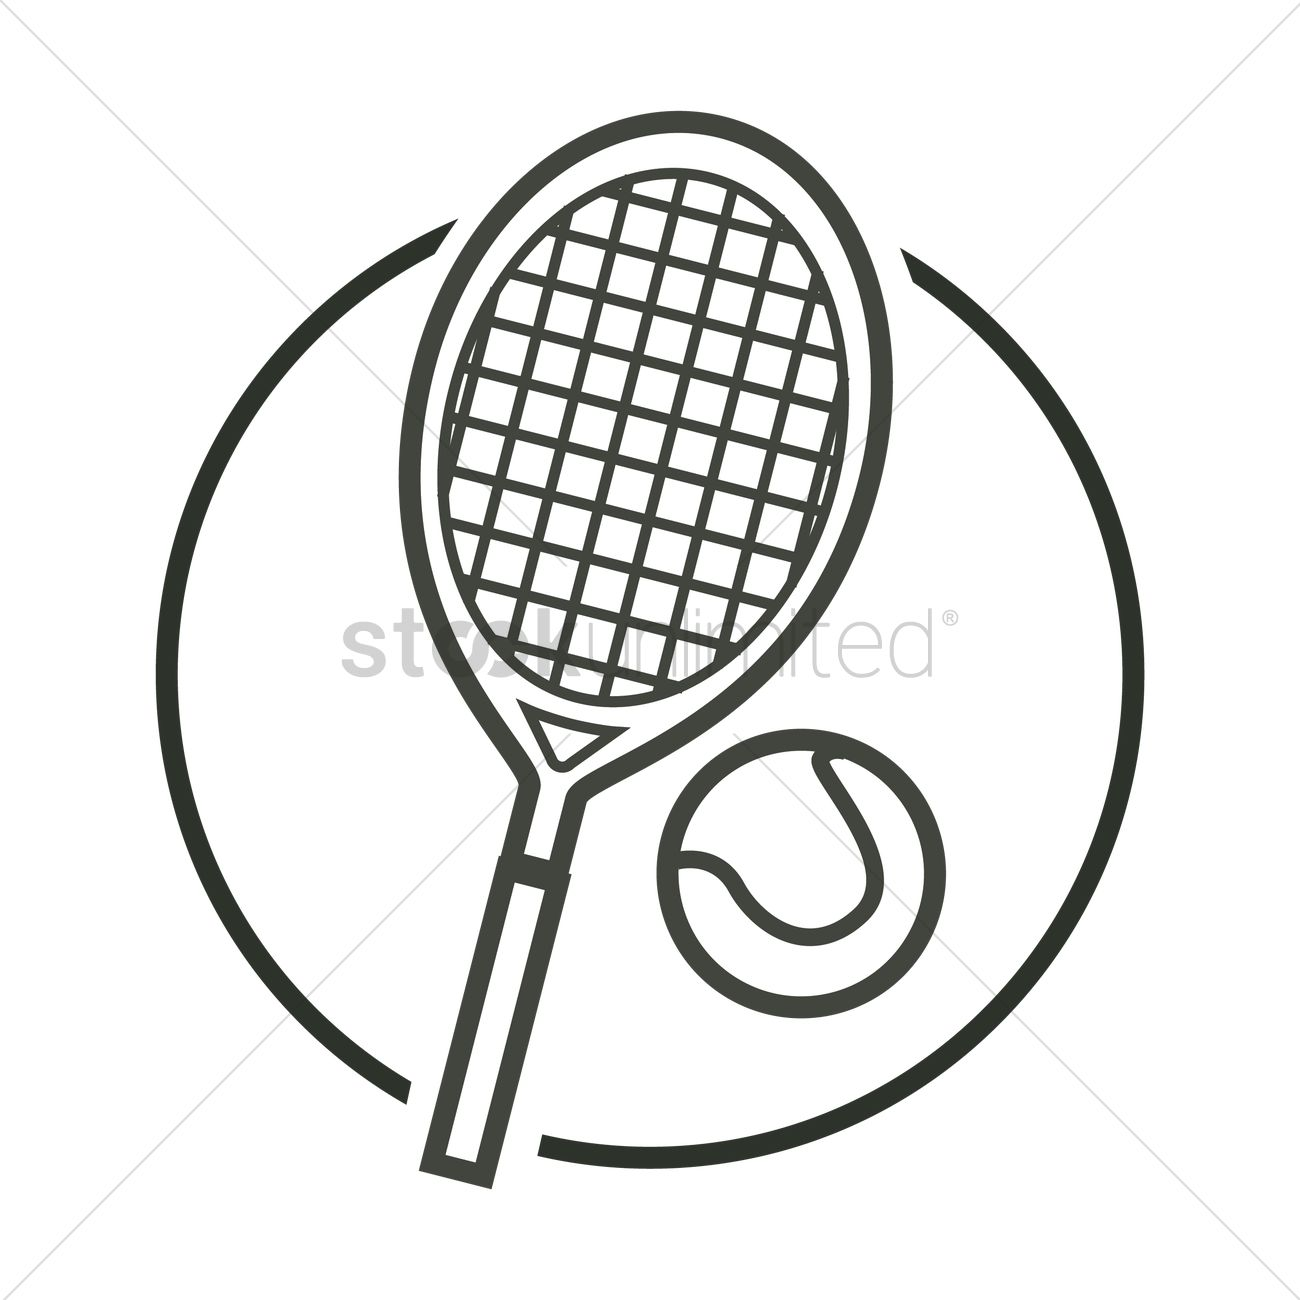 1300x1300 Tennis Racket And Ball Vector Image